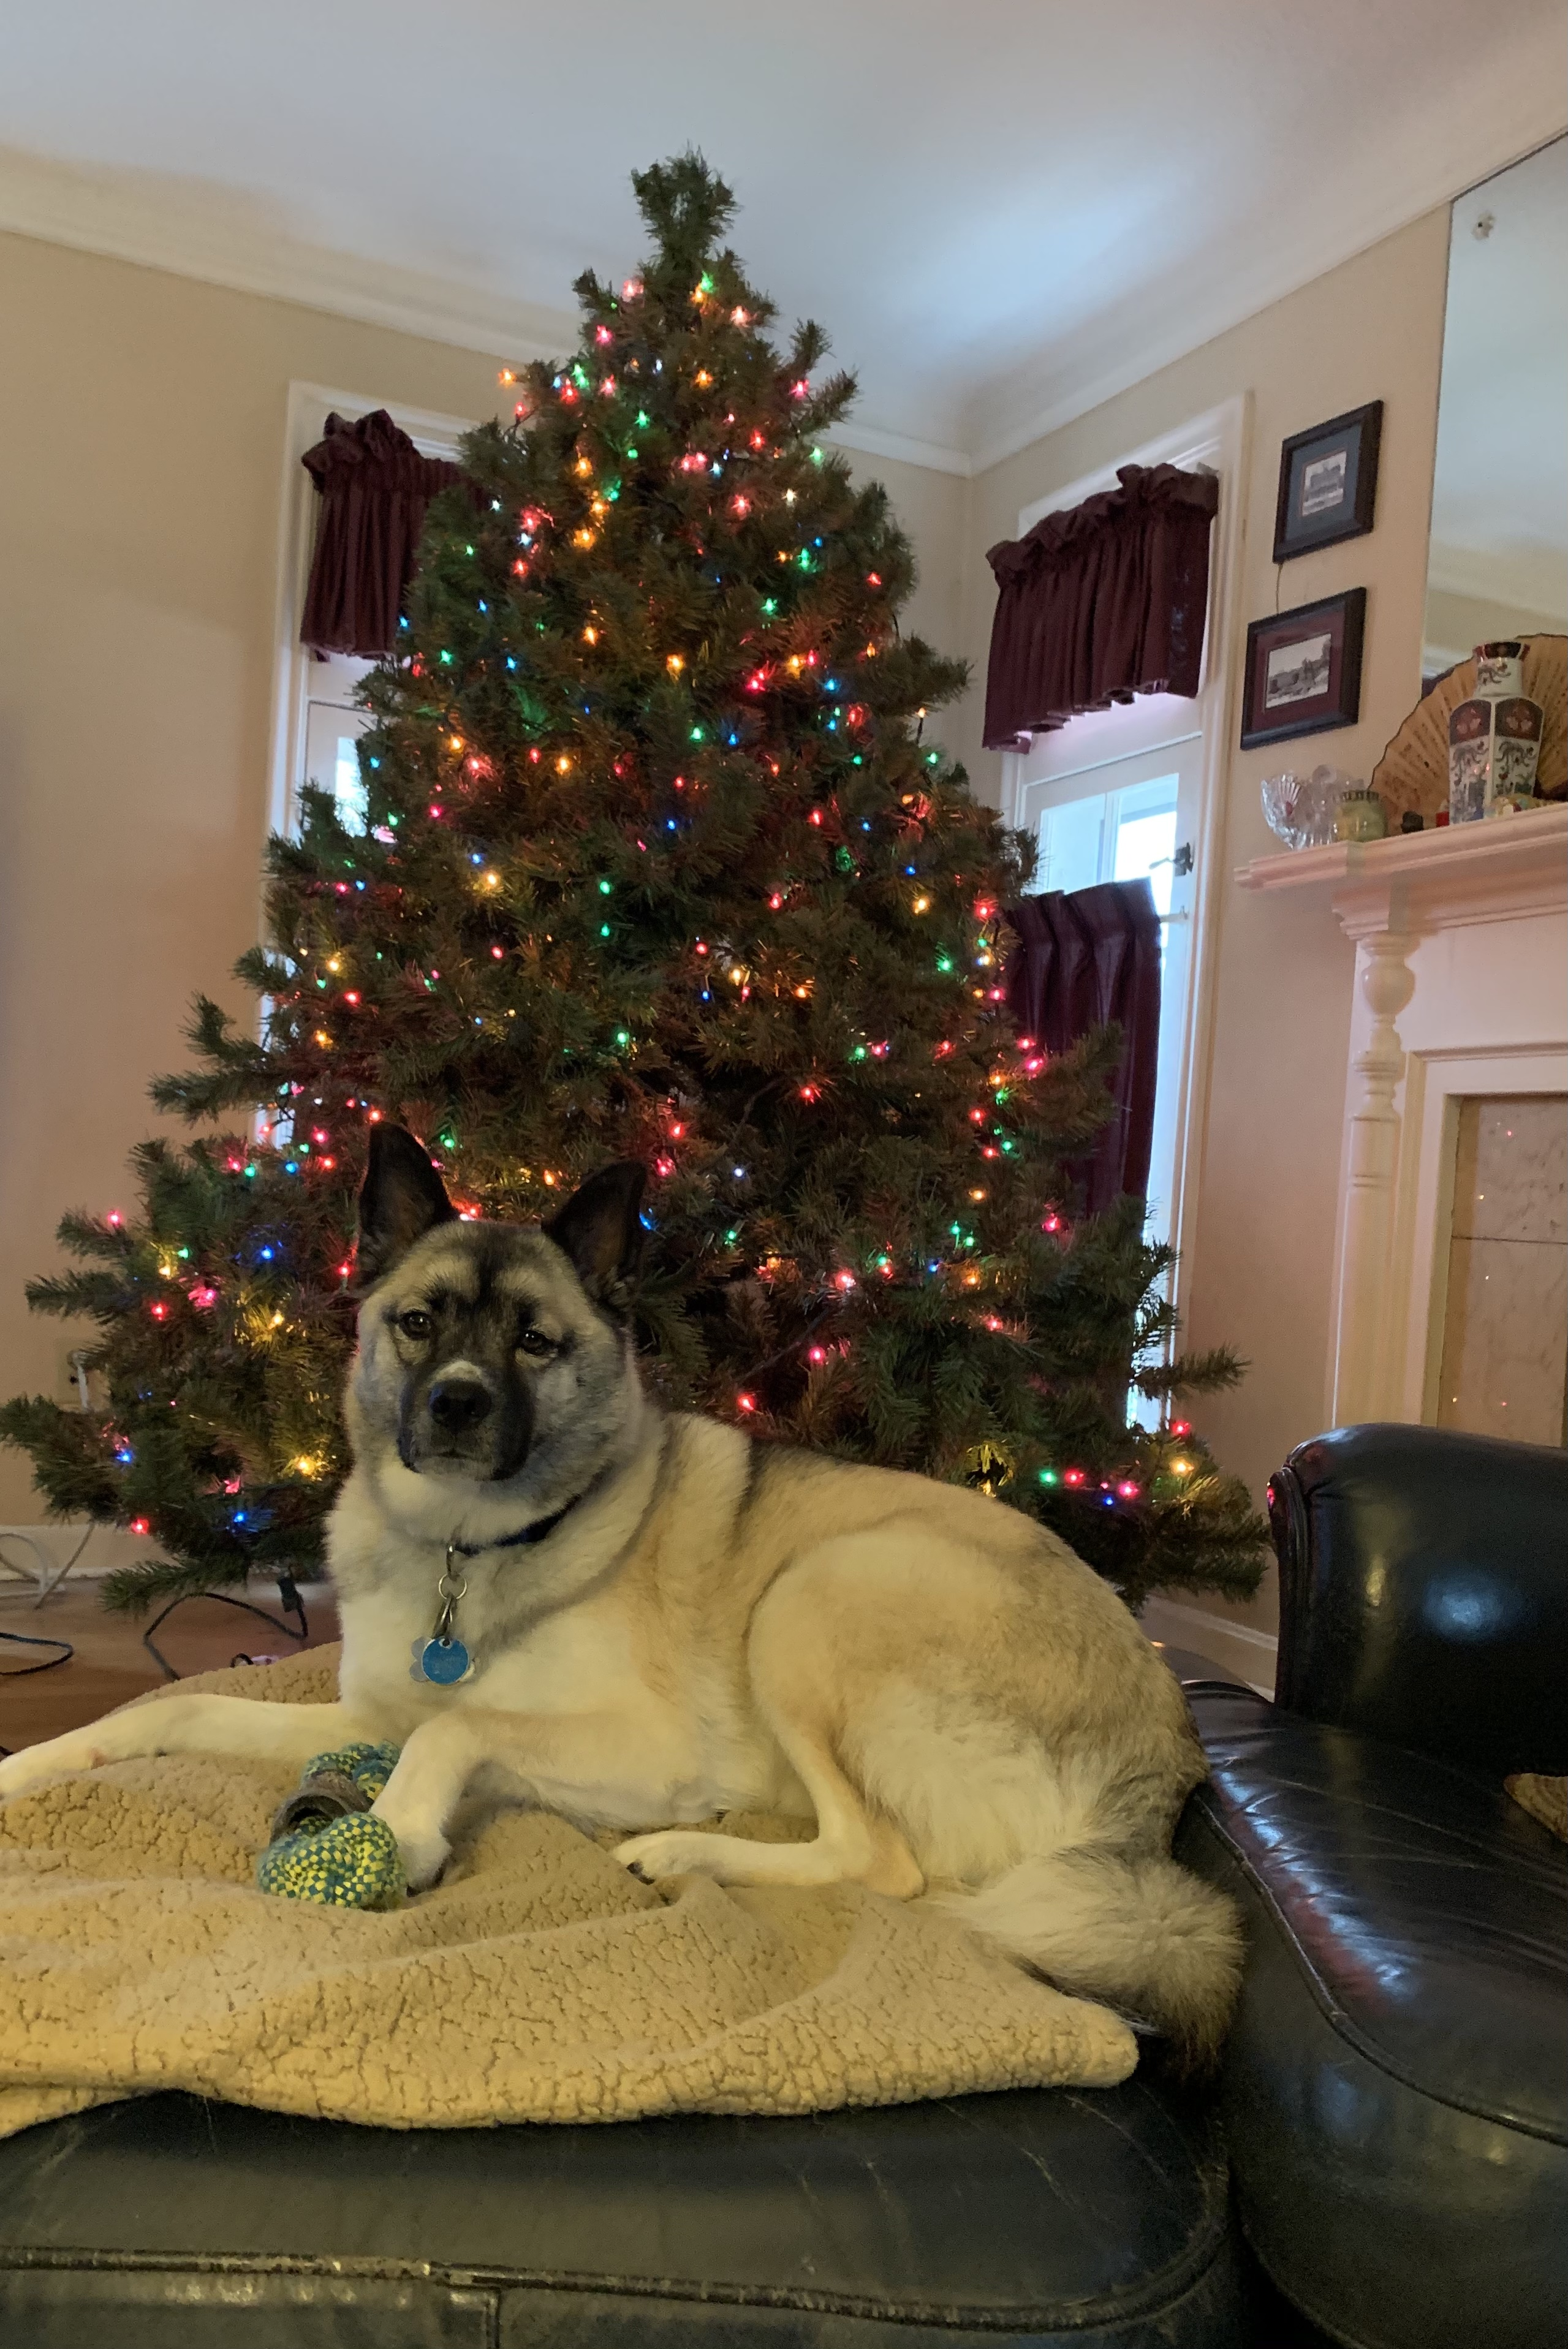 Photo Gallery Share Pictures Of Your Christmas Decorations With Us